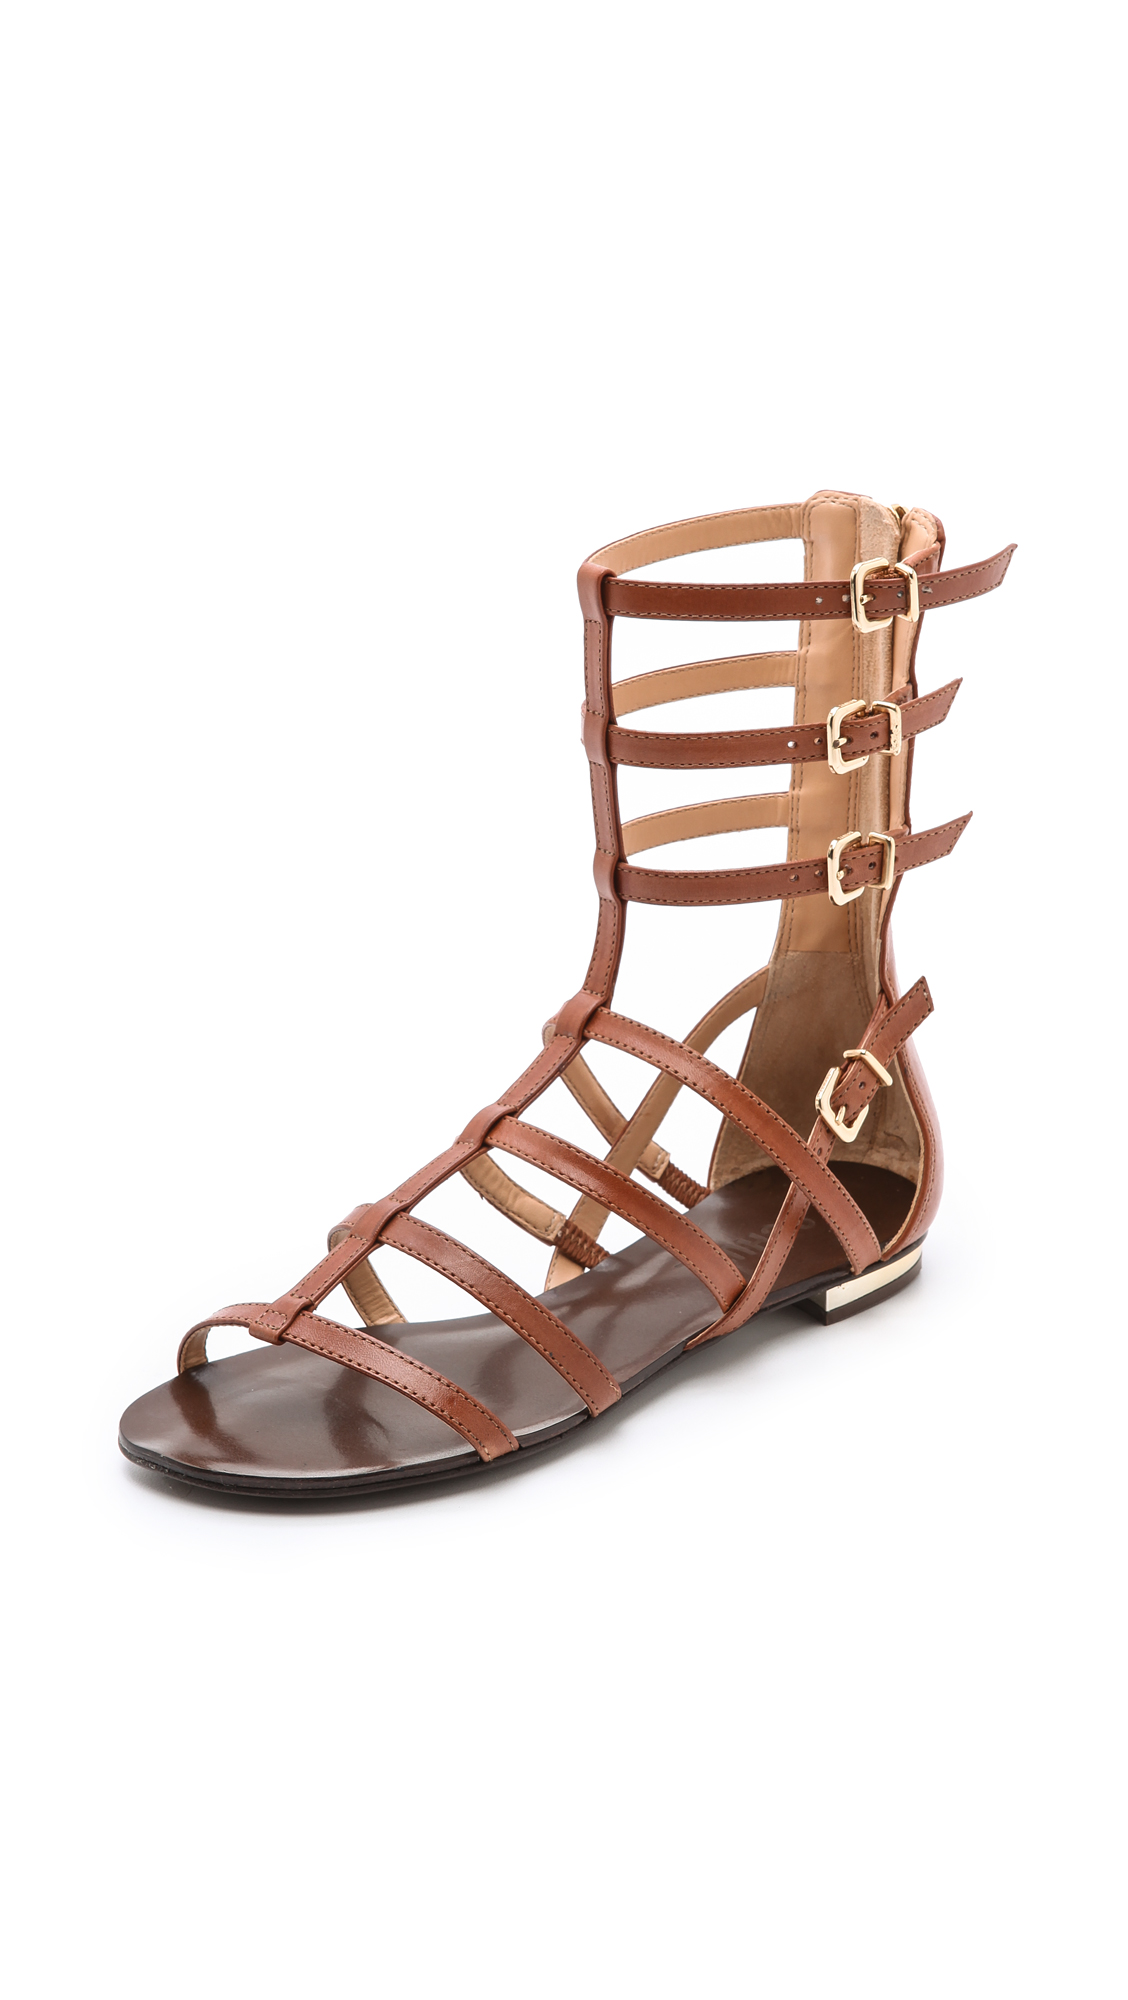 6e15224bc09 Gallery. Previously sold at  Shopbop · Women s Gladiator Sandals ...